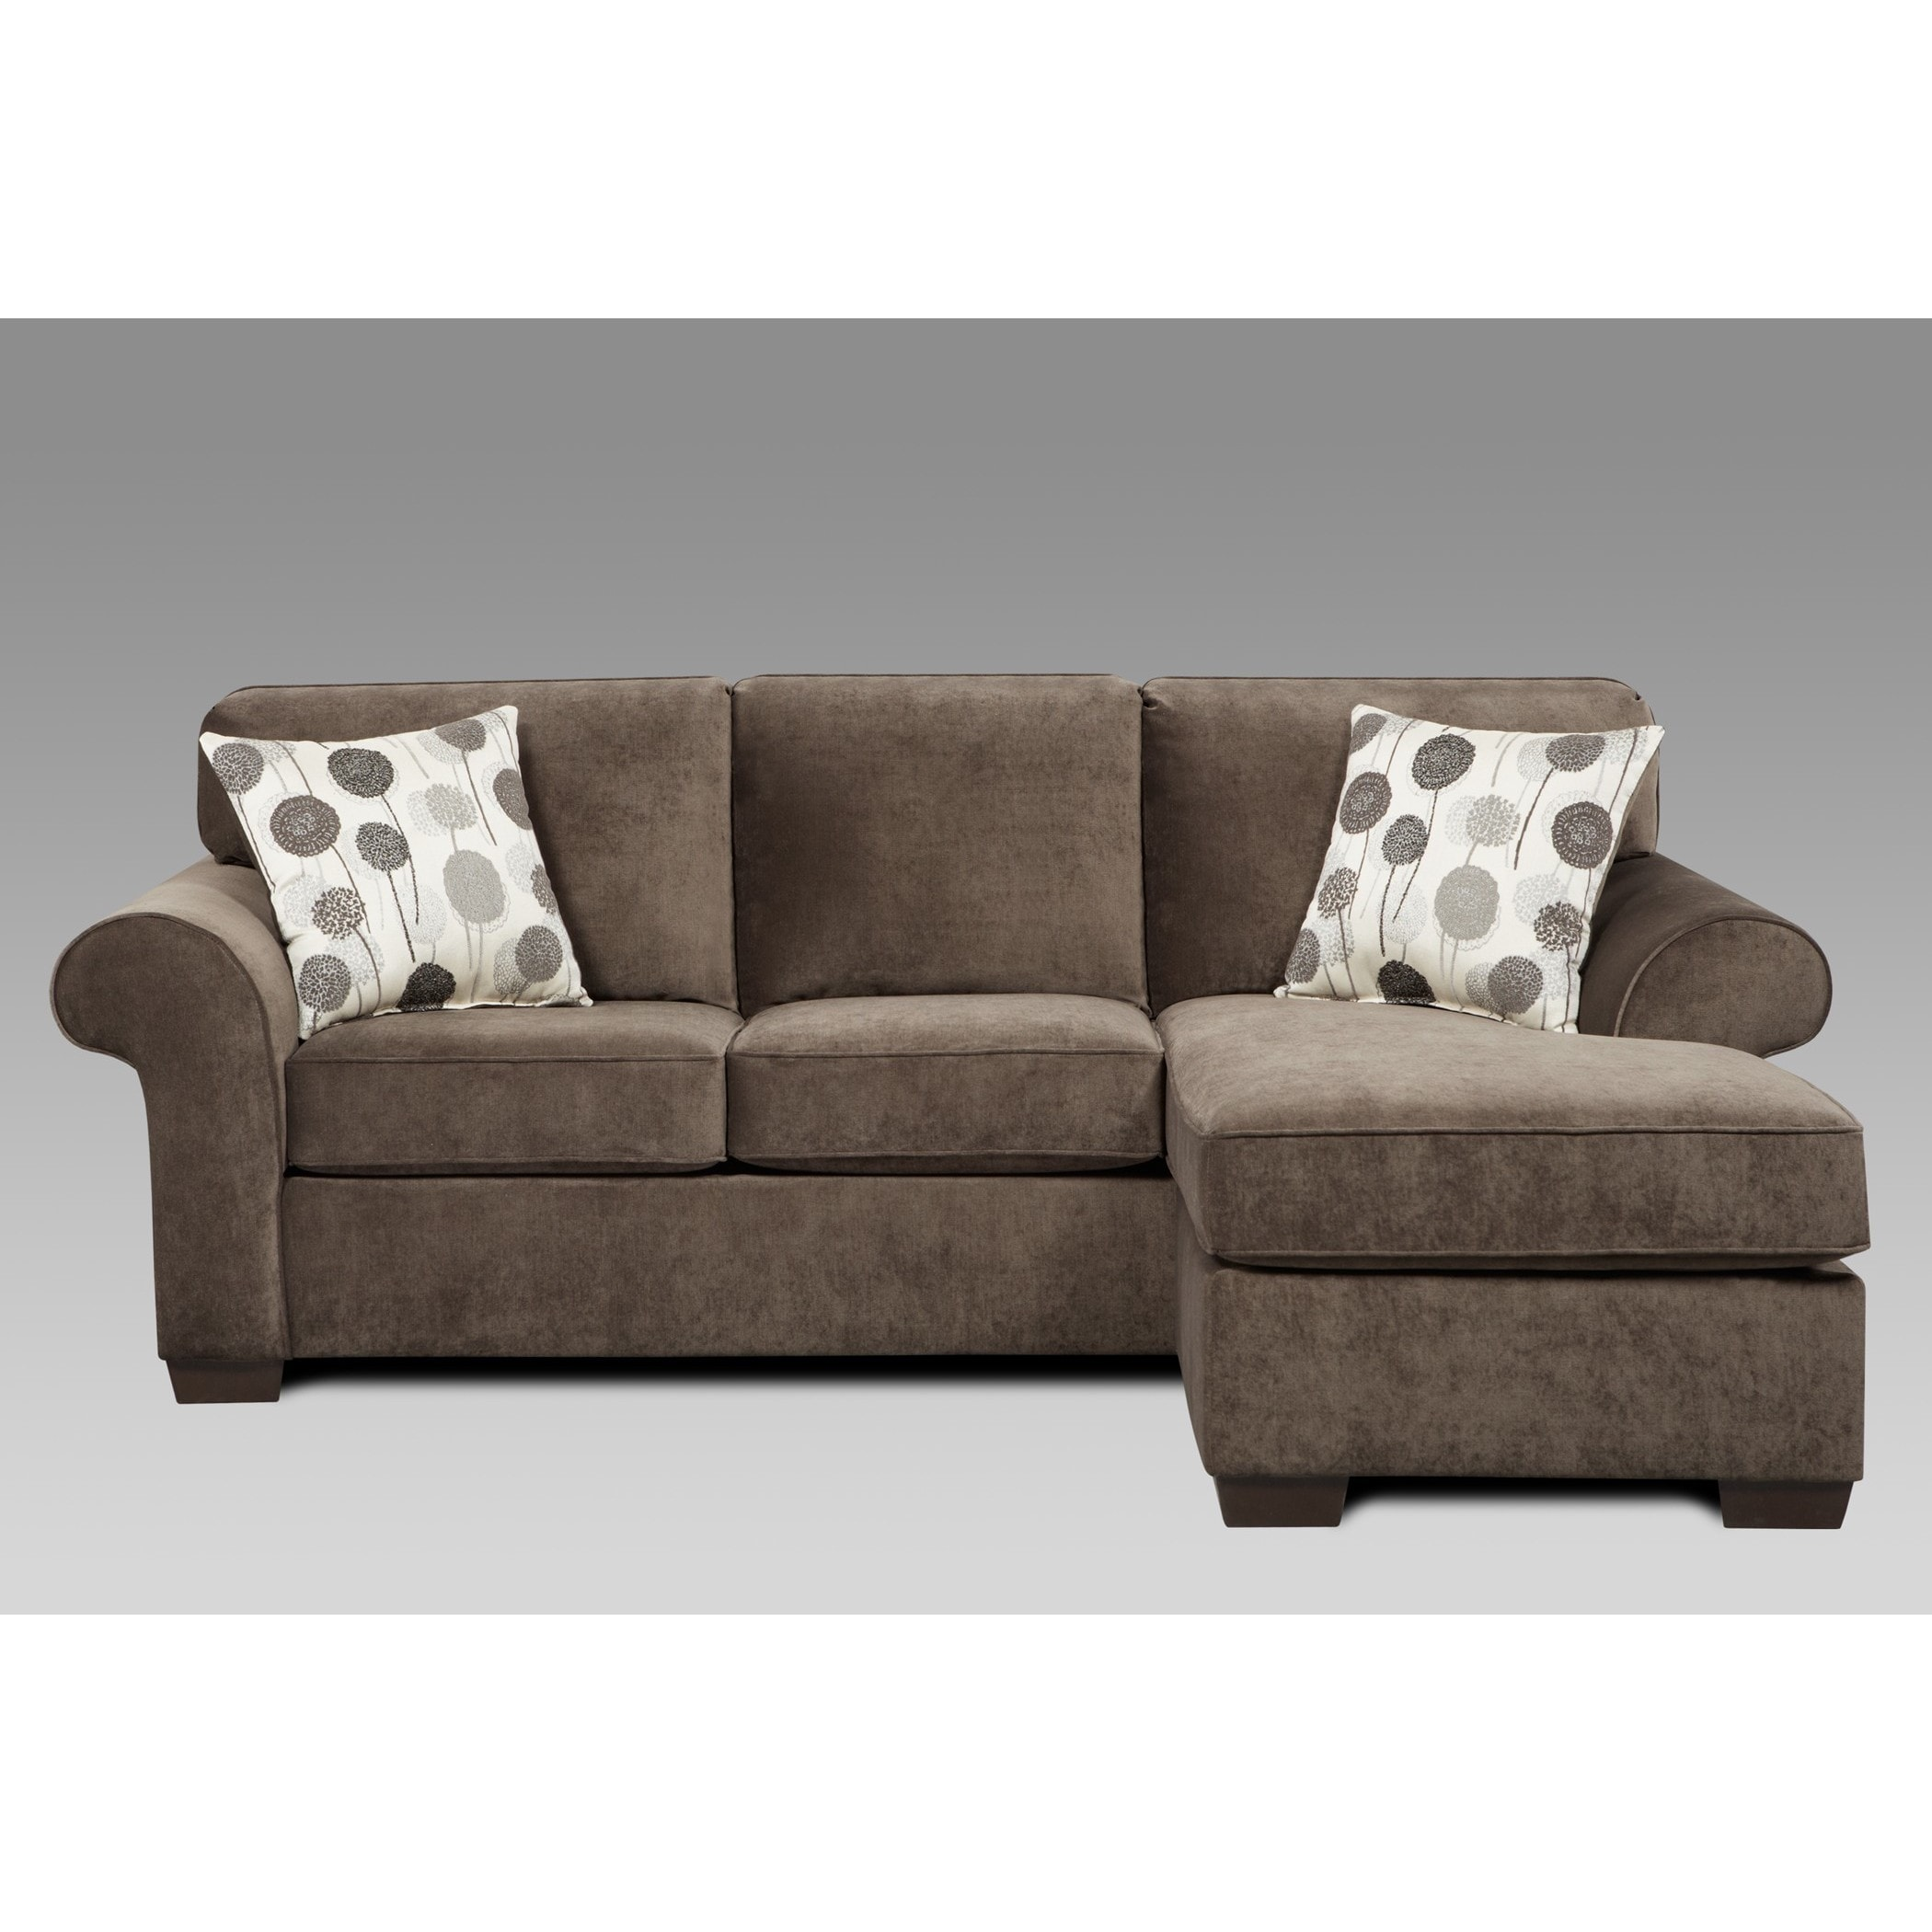 Sofa Trendz Cleo Grey Polyester Sofa/ Chaise Sleeper   Free Shipping Today    Overstock   19467614